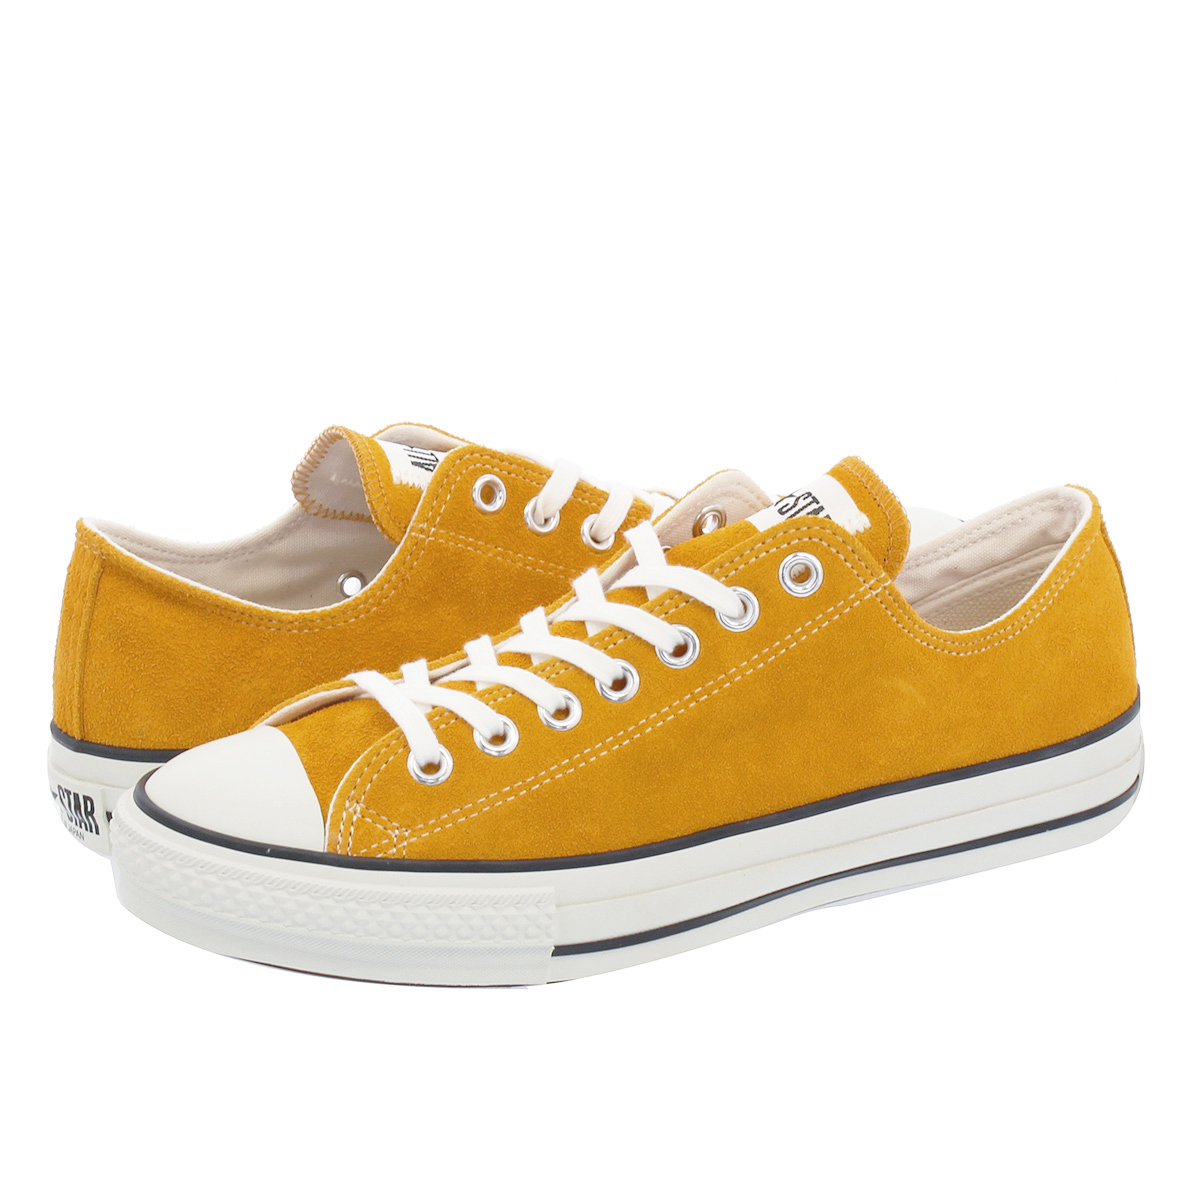 CONVERSE SUEDE ALLSTAR J OX 【MADE IN JAPAN】【日本製】 コンバース スエード オールスター J OX GOLD 32159179